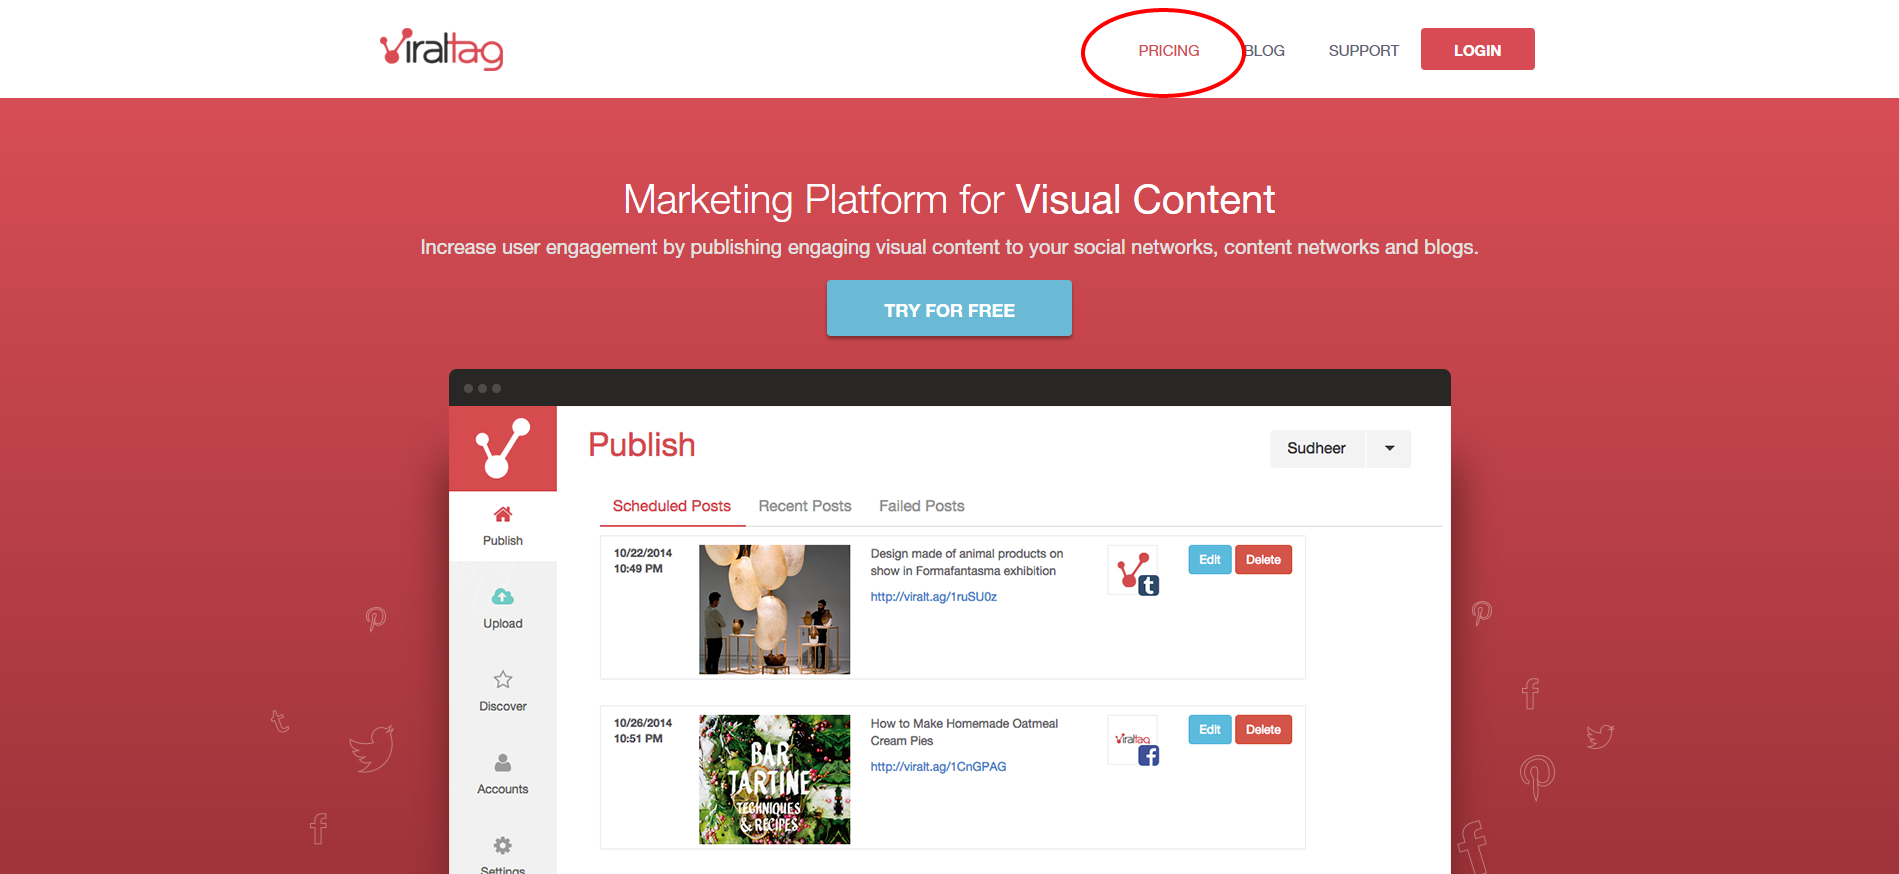 Viraltag Pinterest Marketing Management Tool for Brands Businesses Bloggers